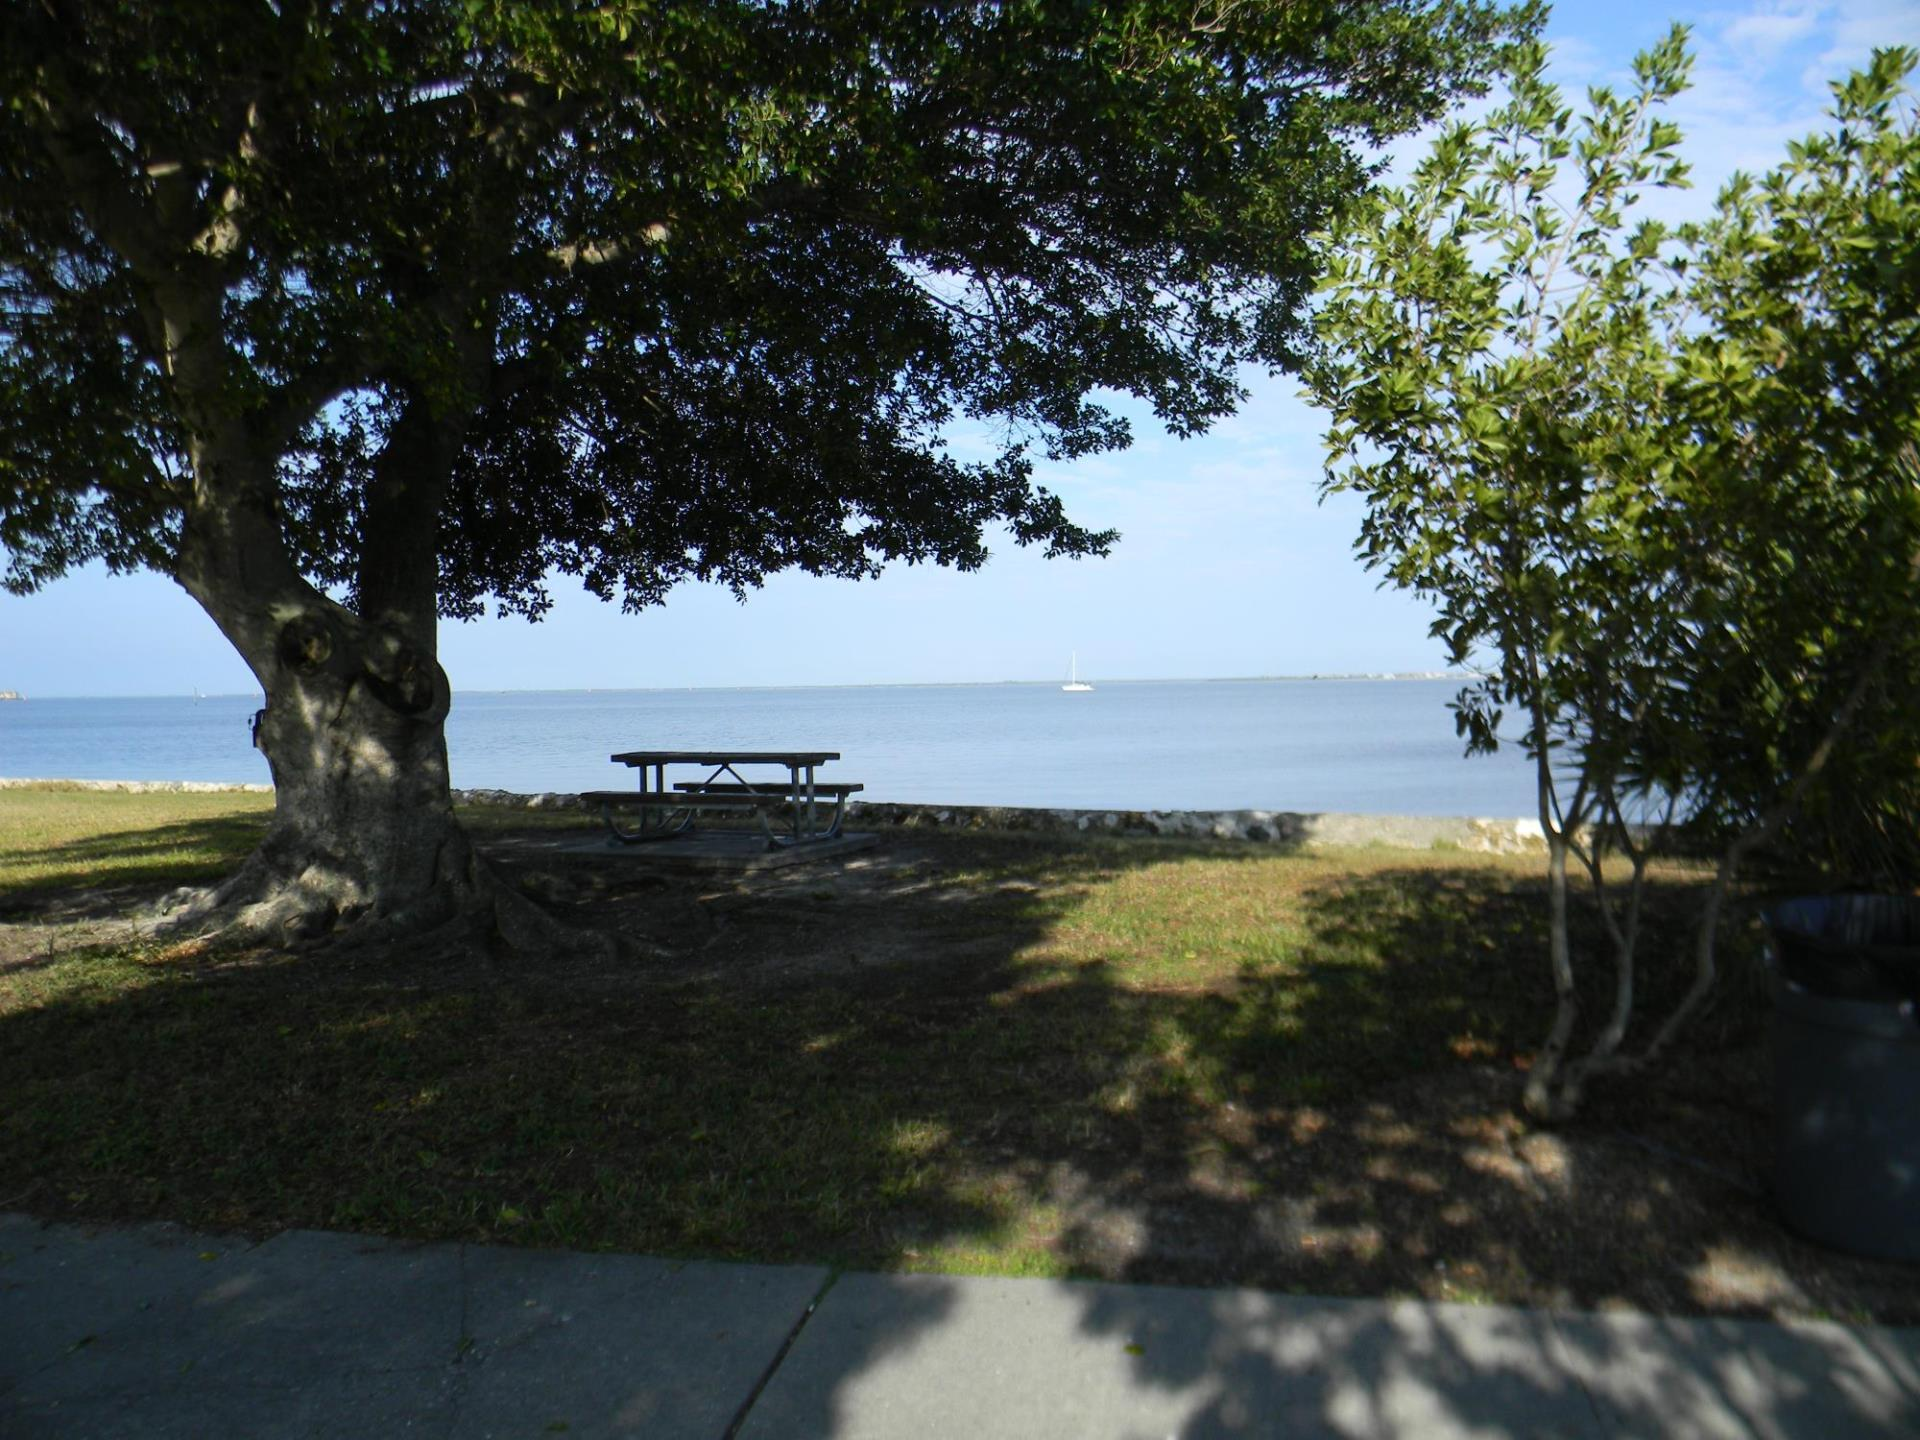 gilchrest park overlooking harbor with picnic table